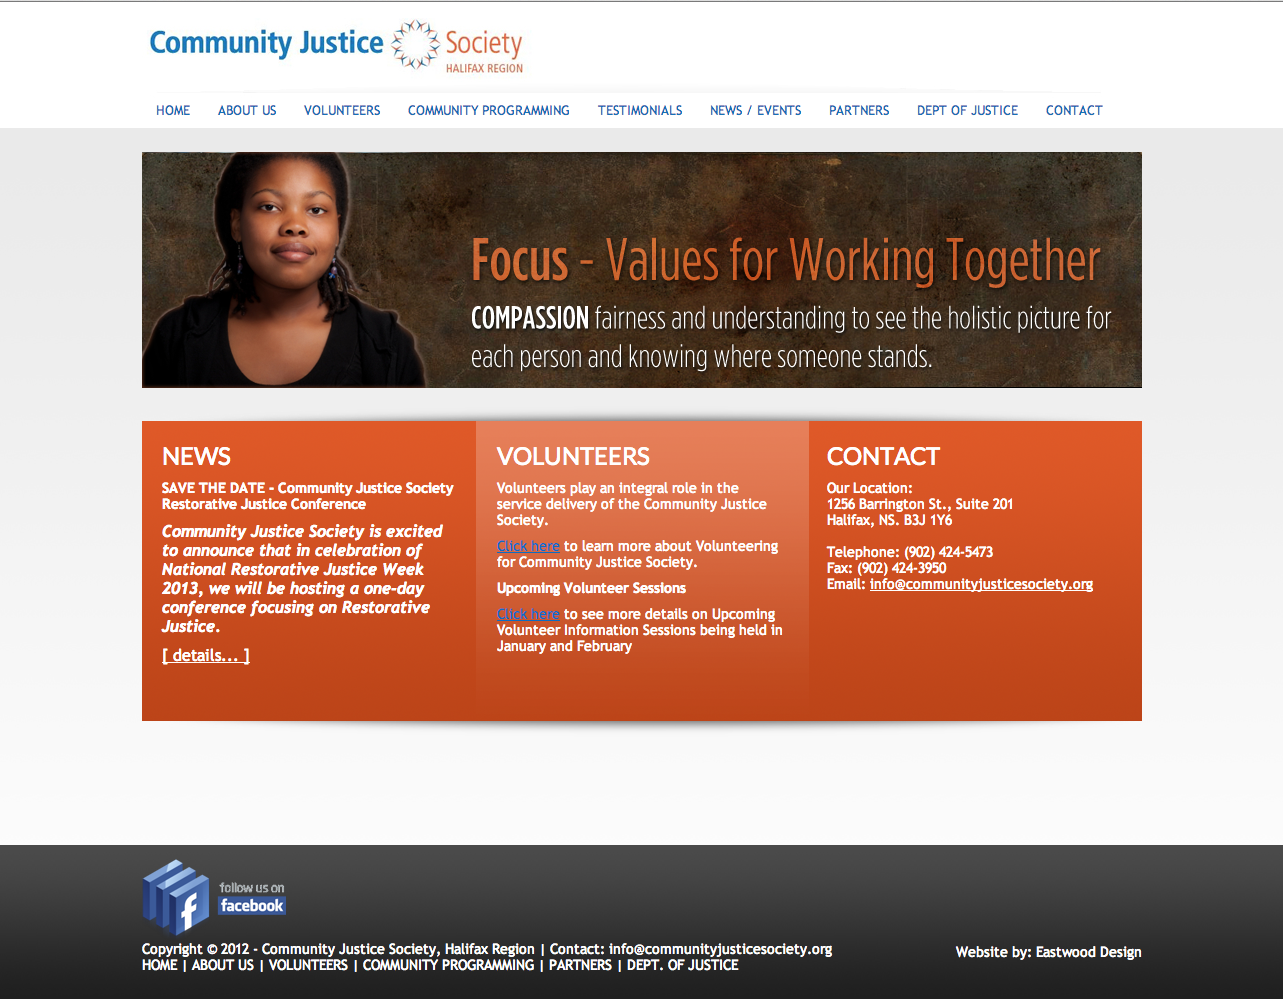 Community Justice Society